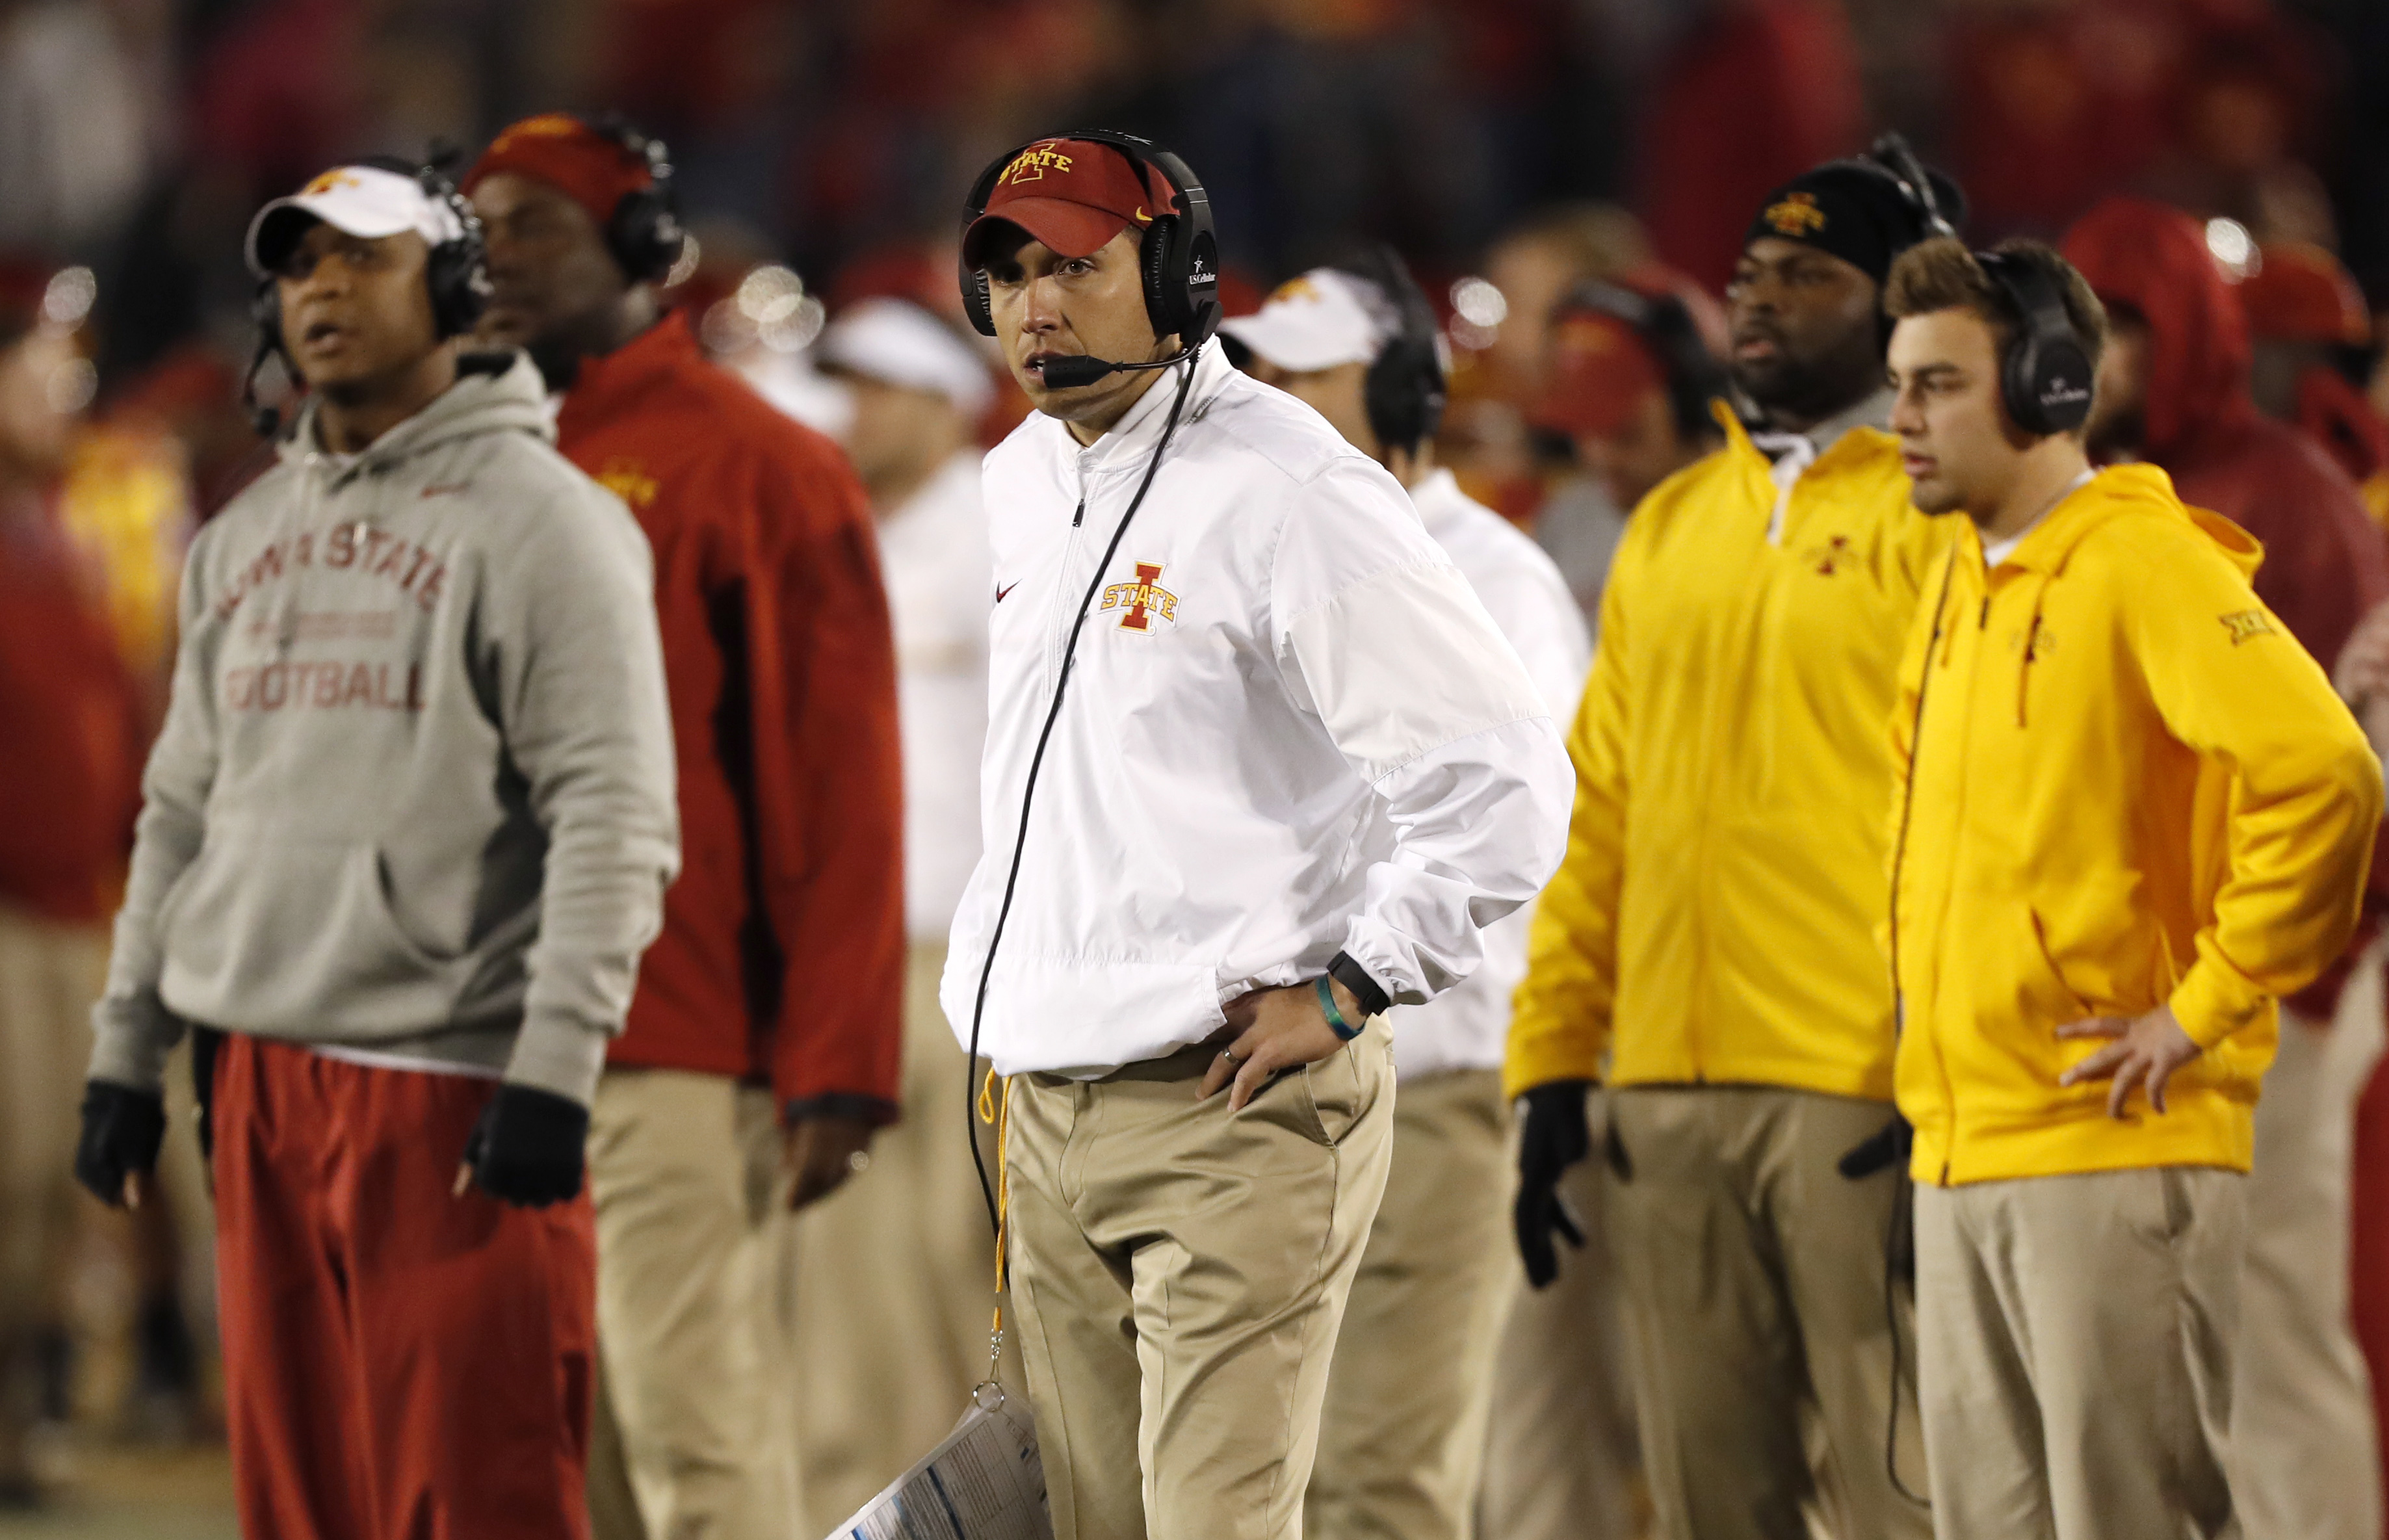 Iowa State head coach Matt Campbell, center, watches from the sideline during the second half of an NCAA college football game against West Virginia, Saturday, Nov. 26, 2016, in Ames, Iowa. (AP Photo/Charlie Neibergall)